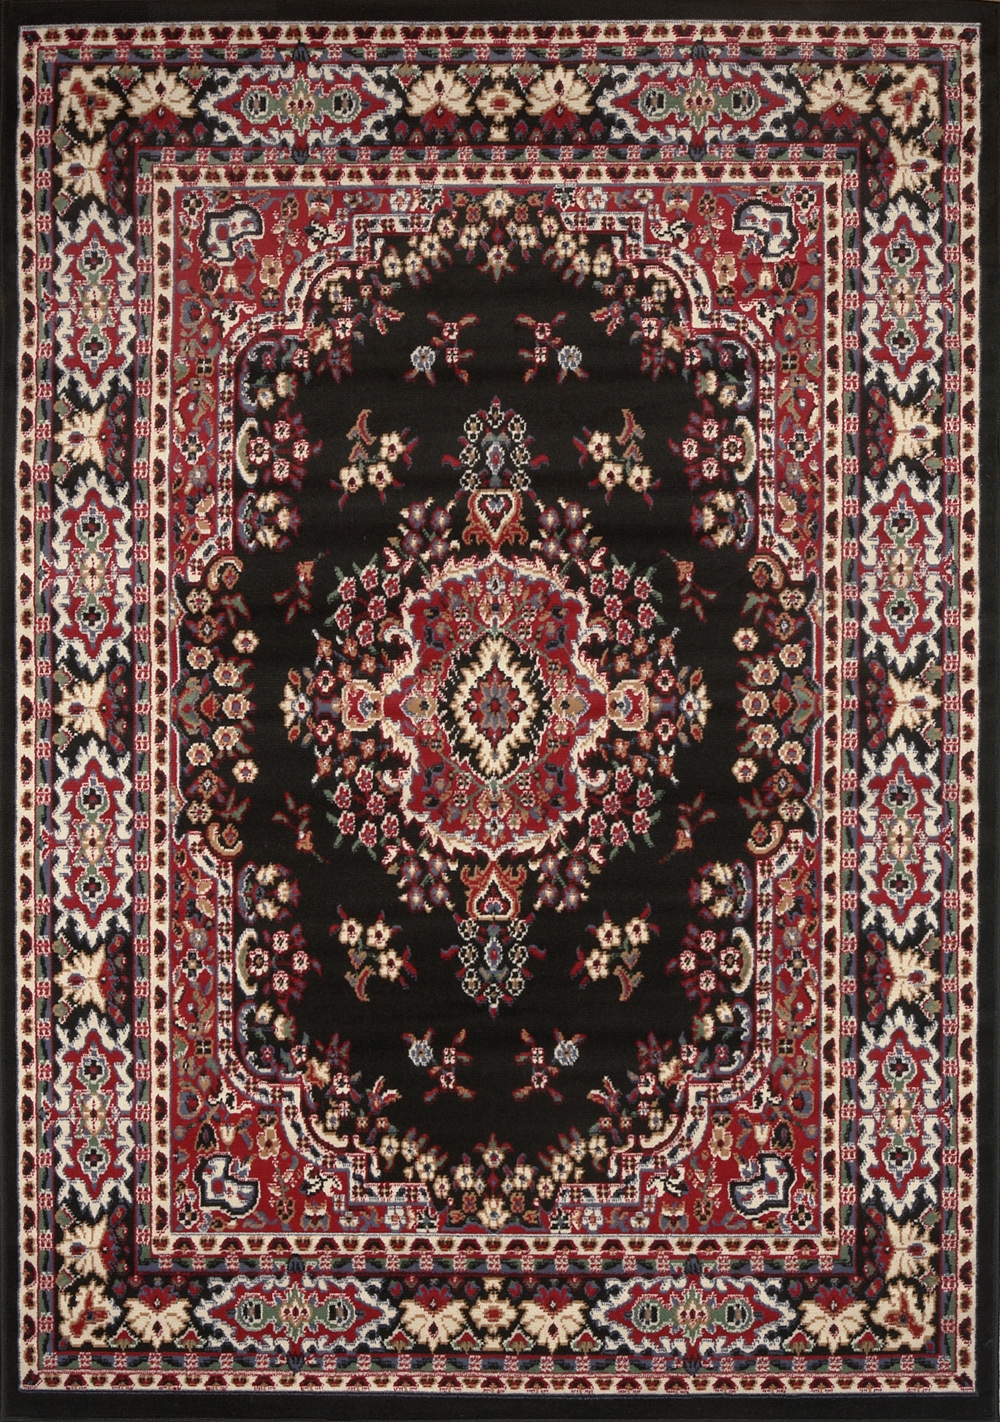 Large Traditional 8×11 Oriental Area Rug Persian Style Carpet Regarding Persian Style Wool Rugs (View 13 of 15)